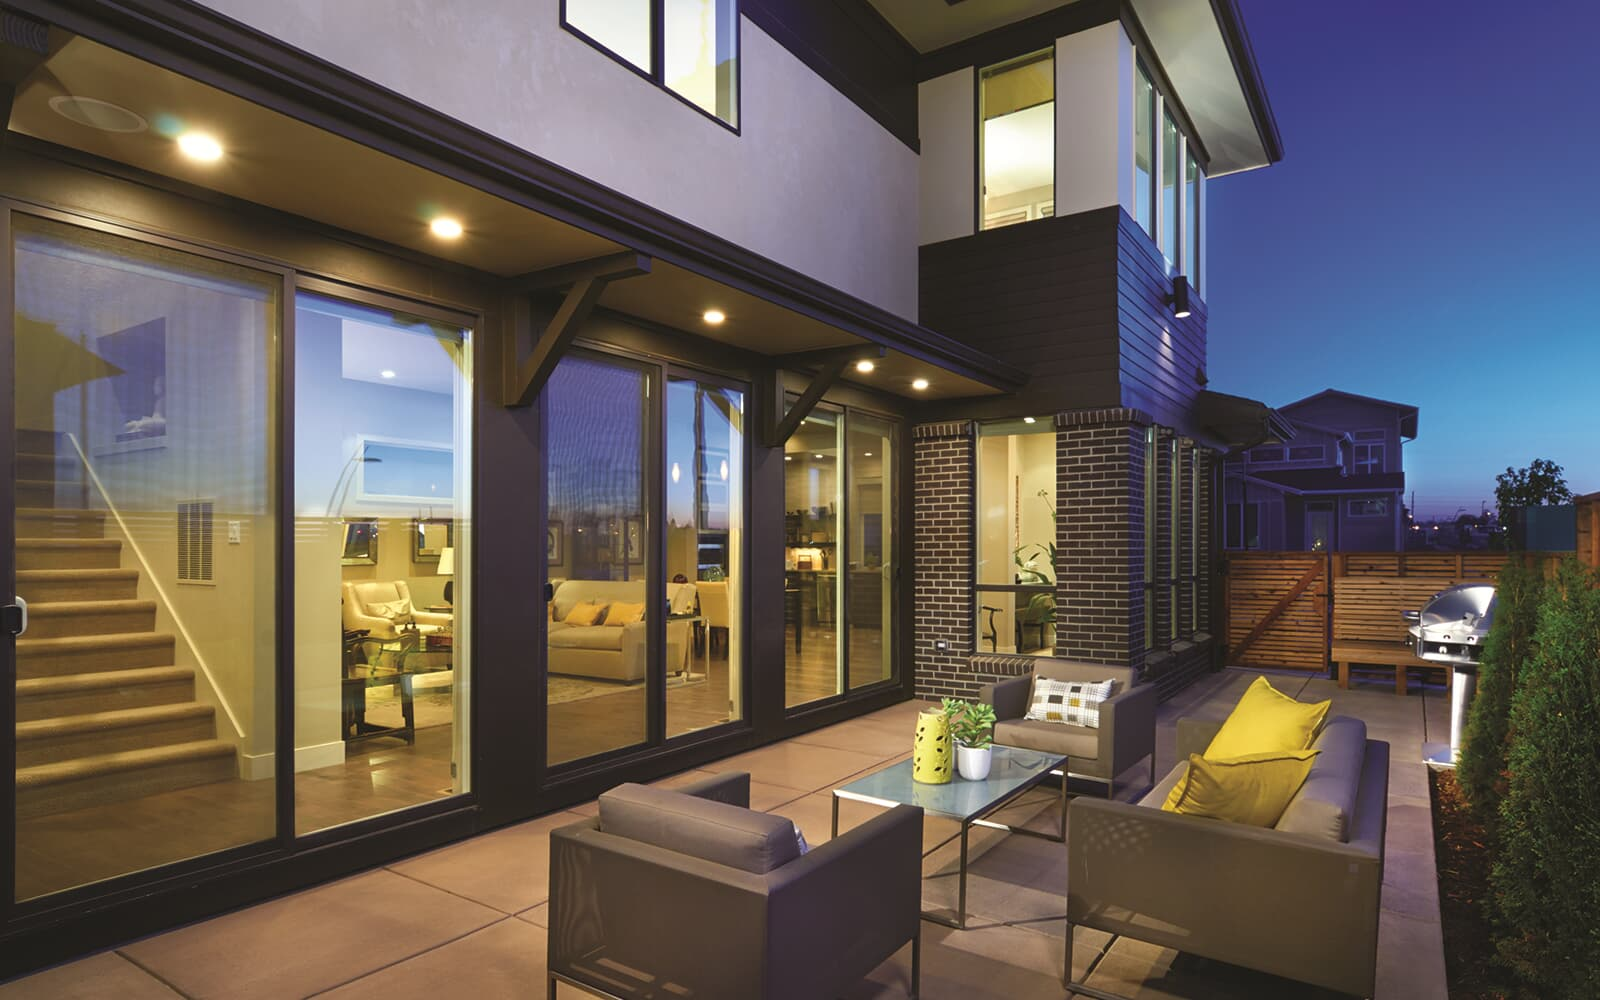 Signature-Two-Model-Patio-Exterior-Midtown-Denver-Colorado